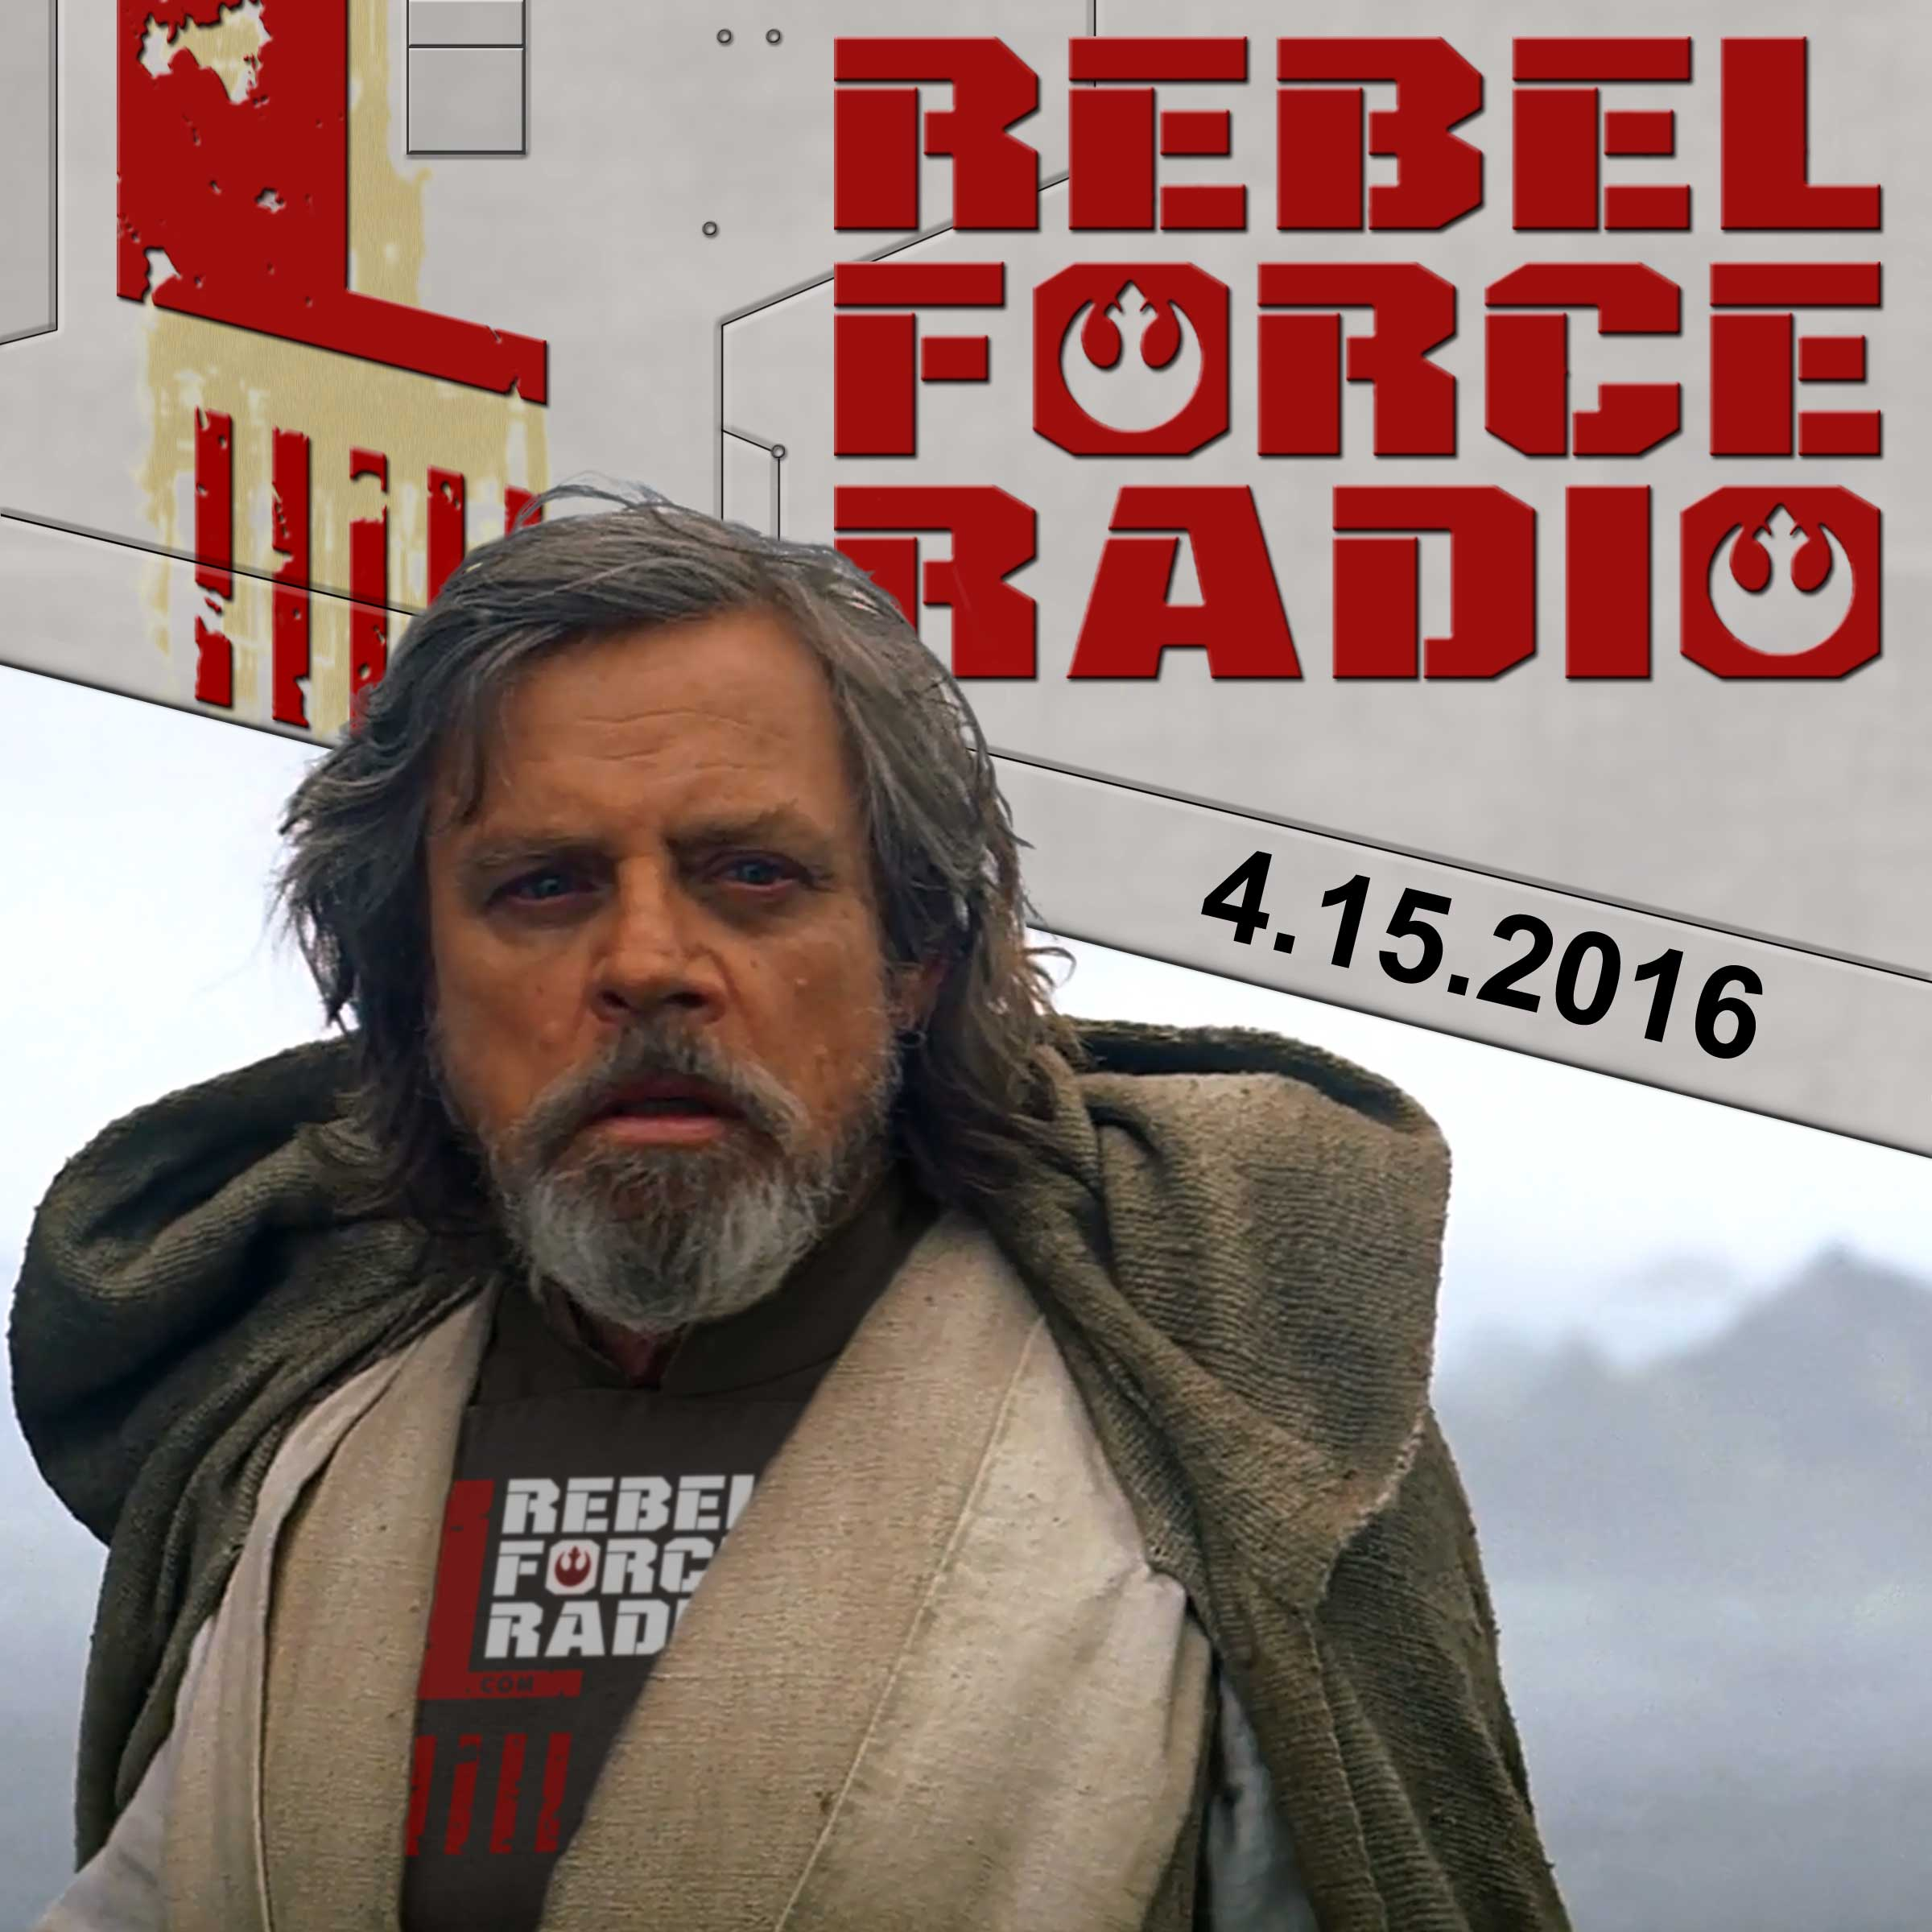 Rebel Force Radio: April 15, 2016